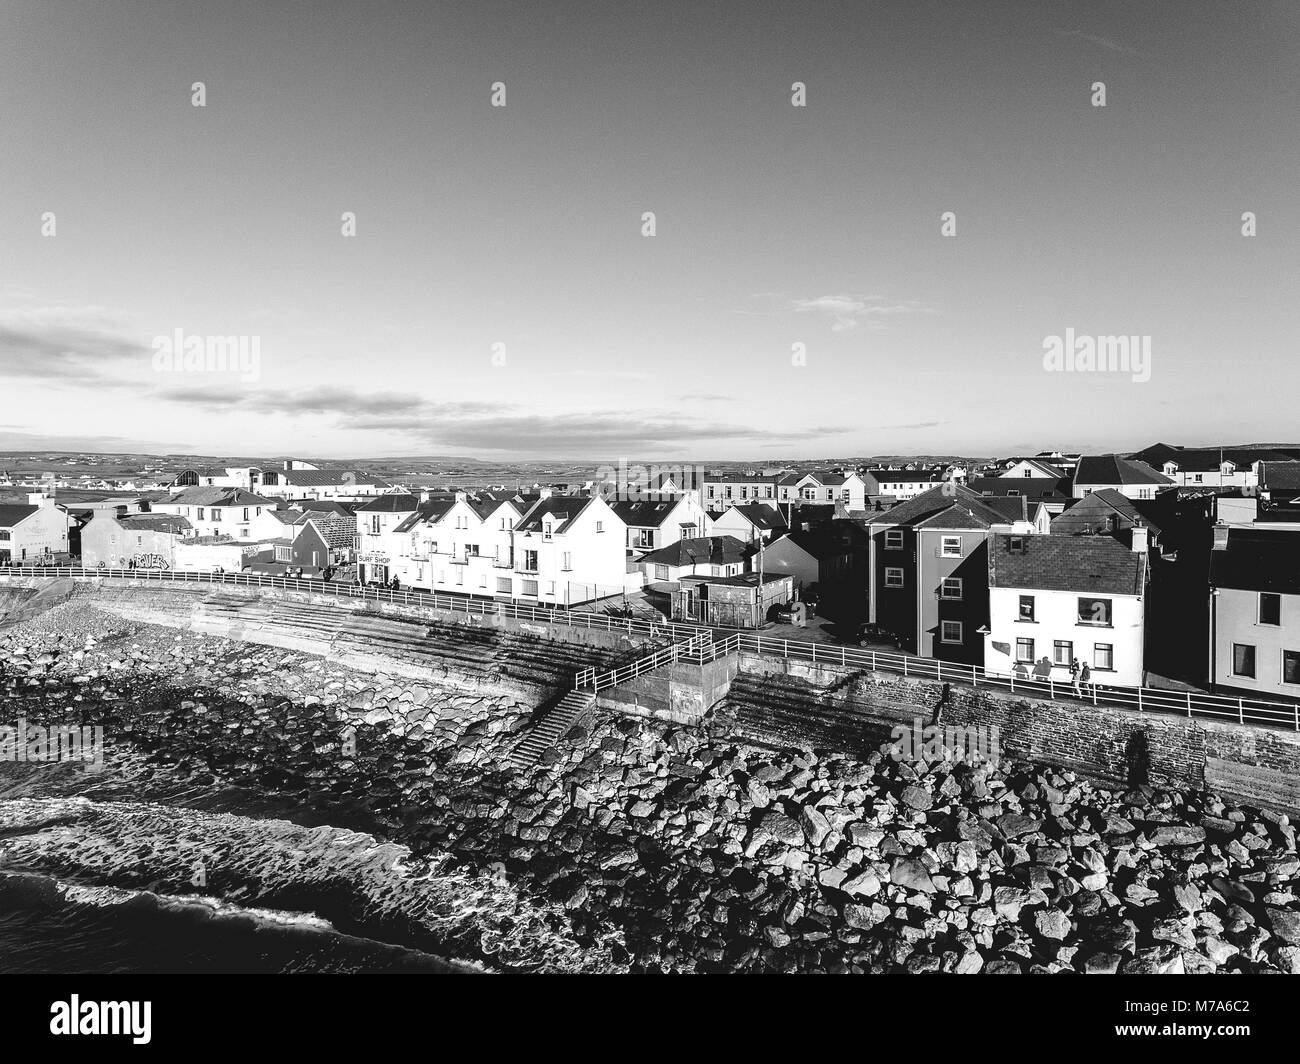 Aerial view of Ireland's top surfing town and beach in Ireland. Lahinch Lehinch town and beach in county clare. - Stock Image